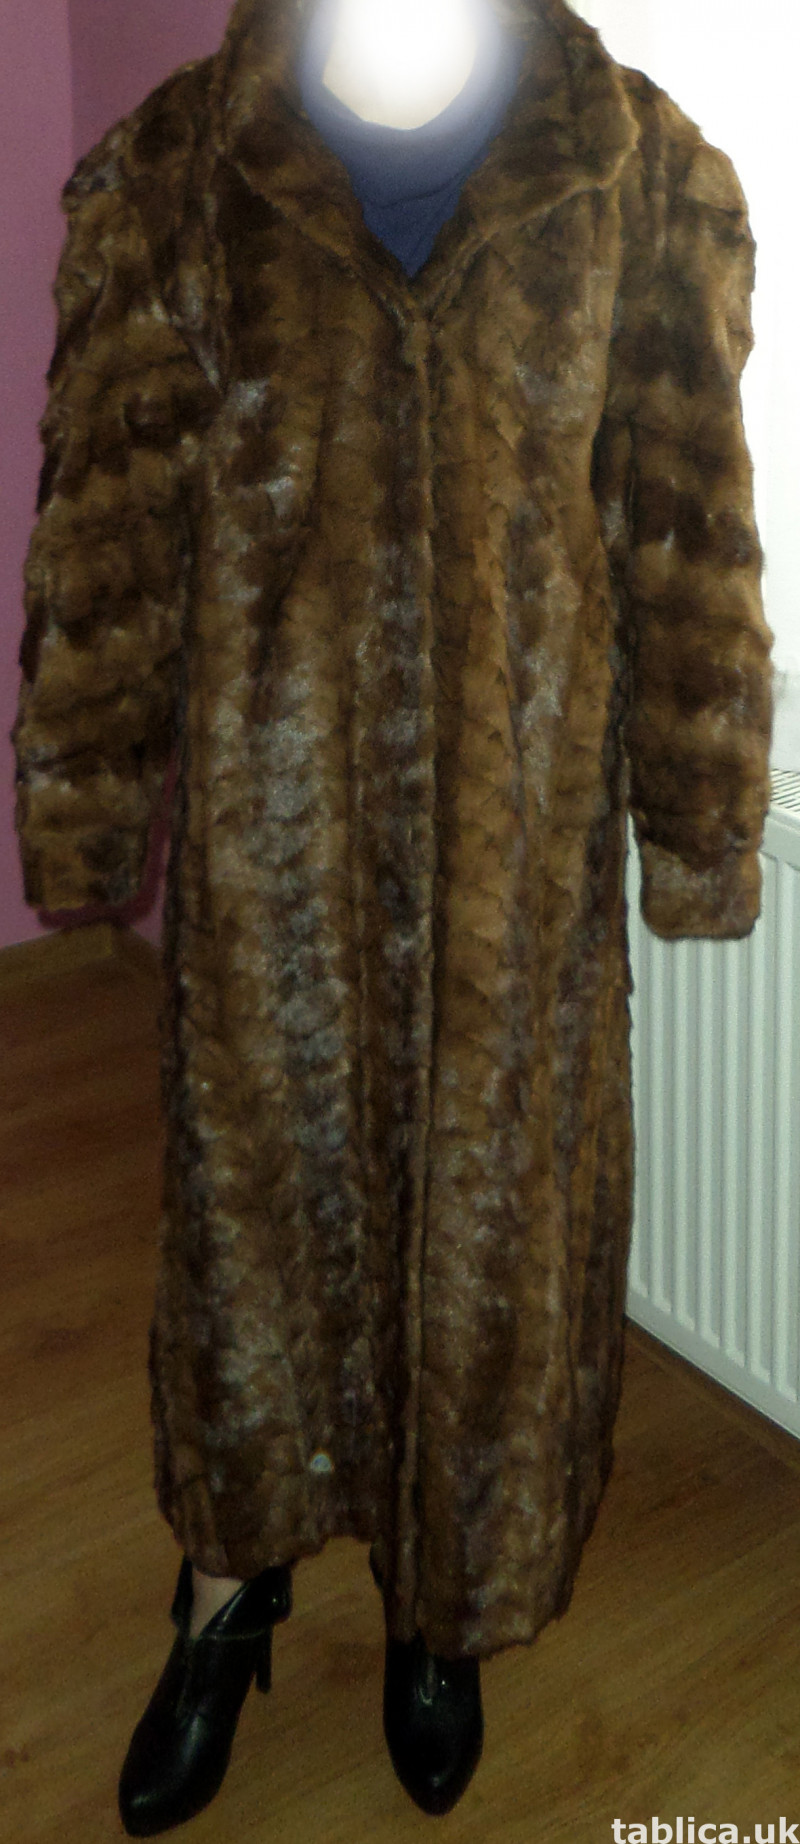 For Sale: Long Fur Coat from Mink Bellies  2